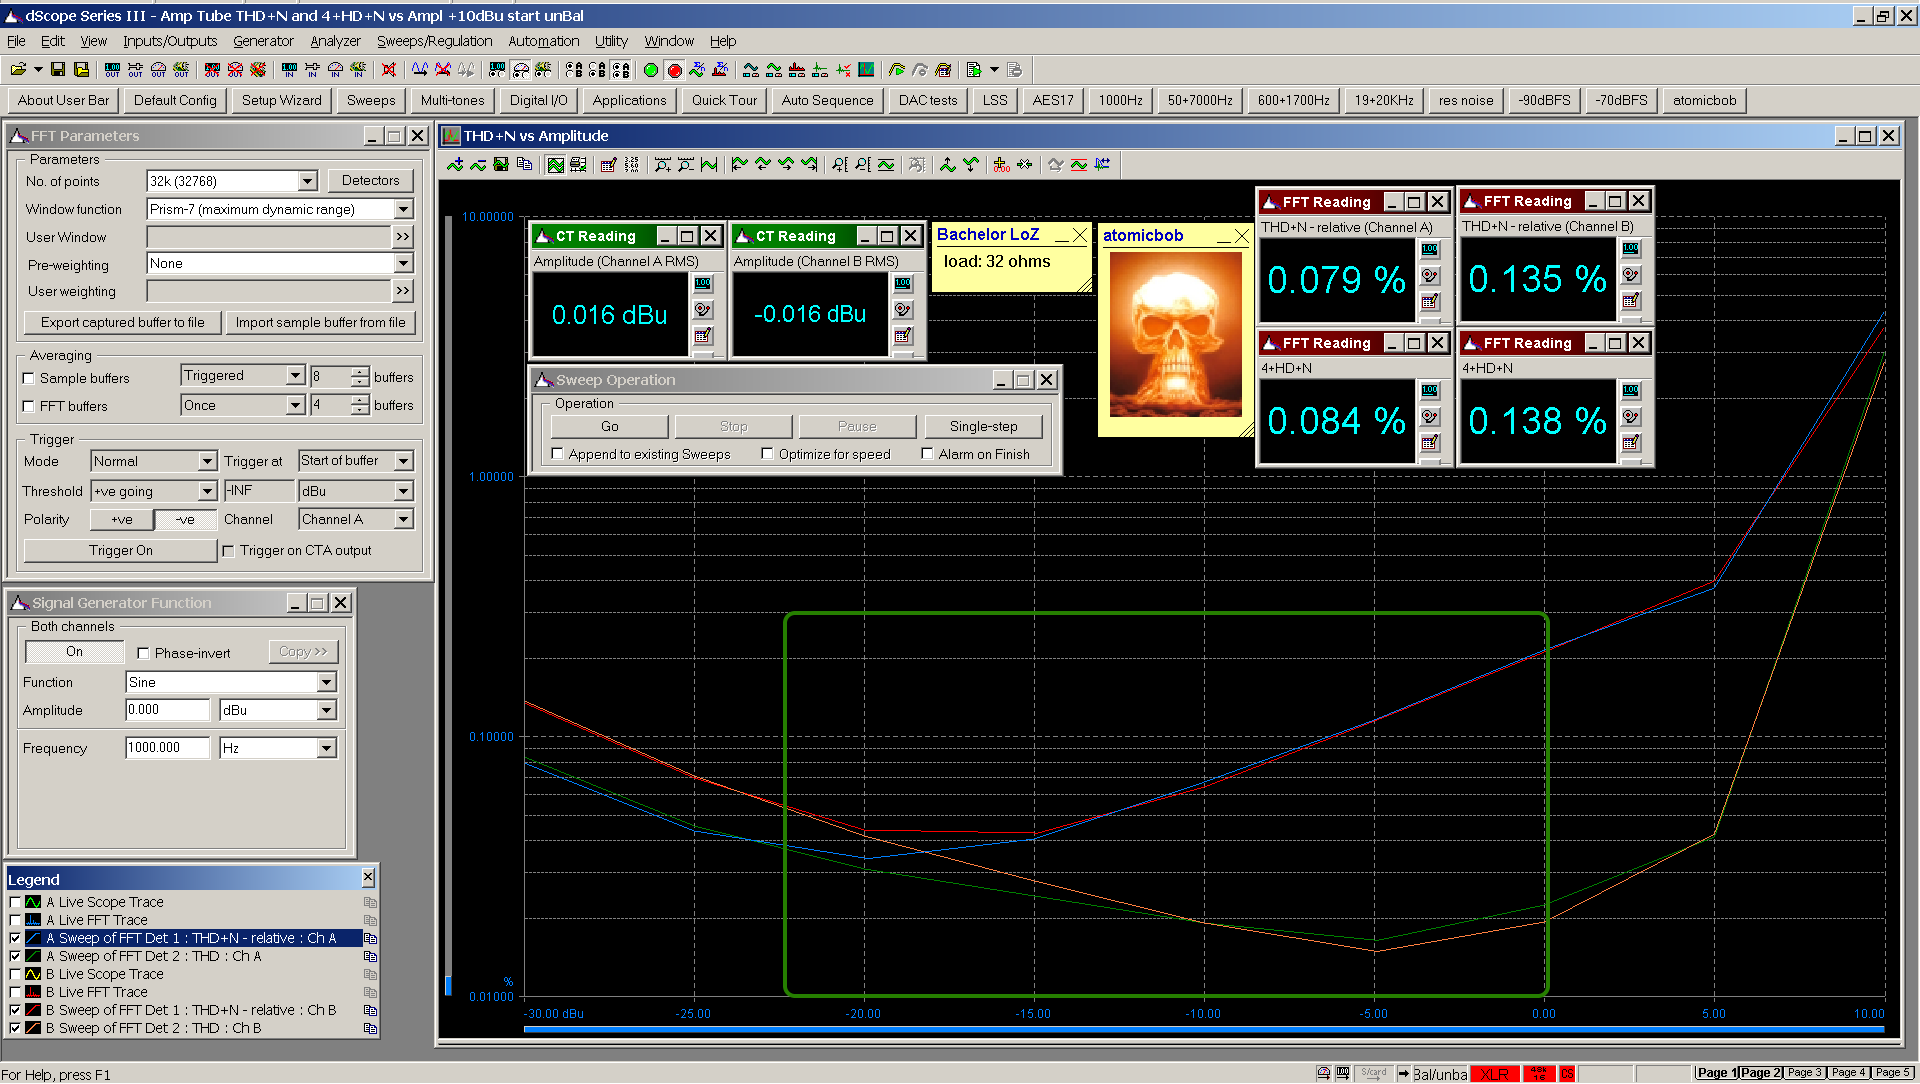 07 20200623 Bachelor 6z1p THD+N 4+HD+N vs dBu 1000Hz 32R HiZ 0dB gain - annotated 2.png